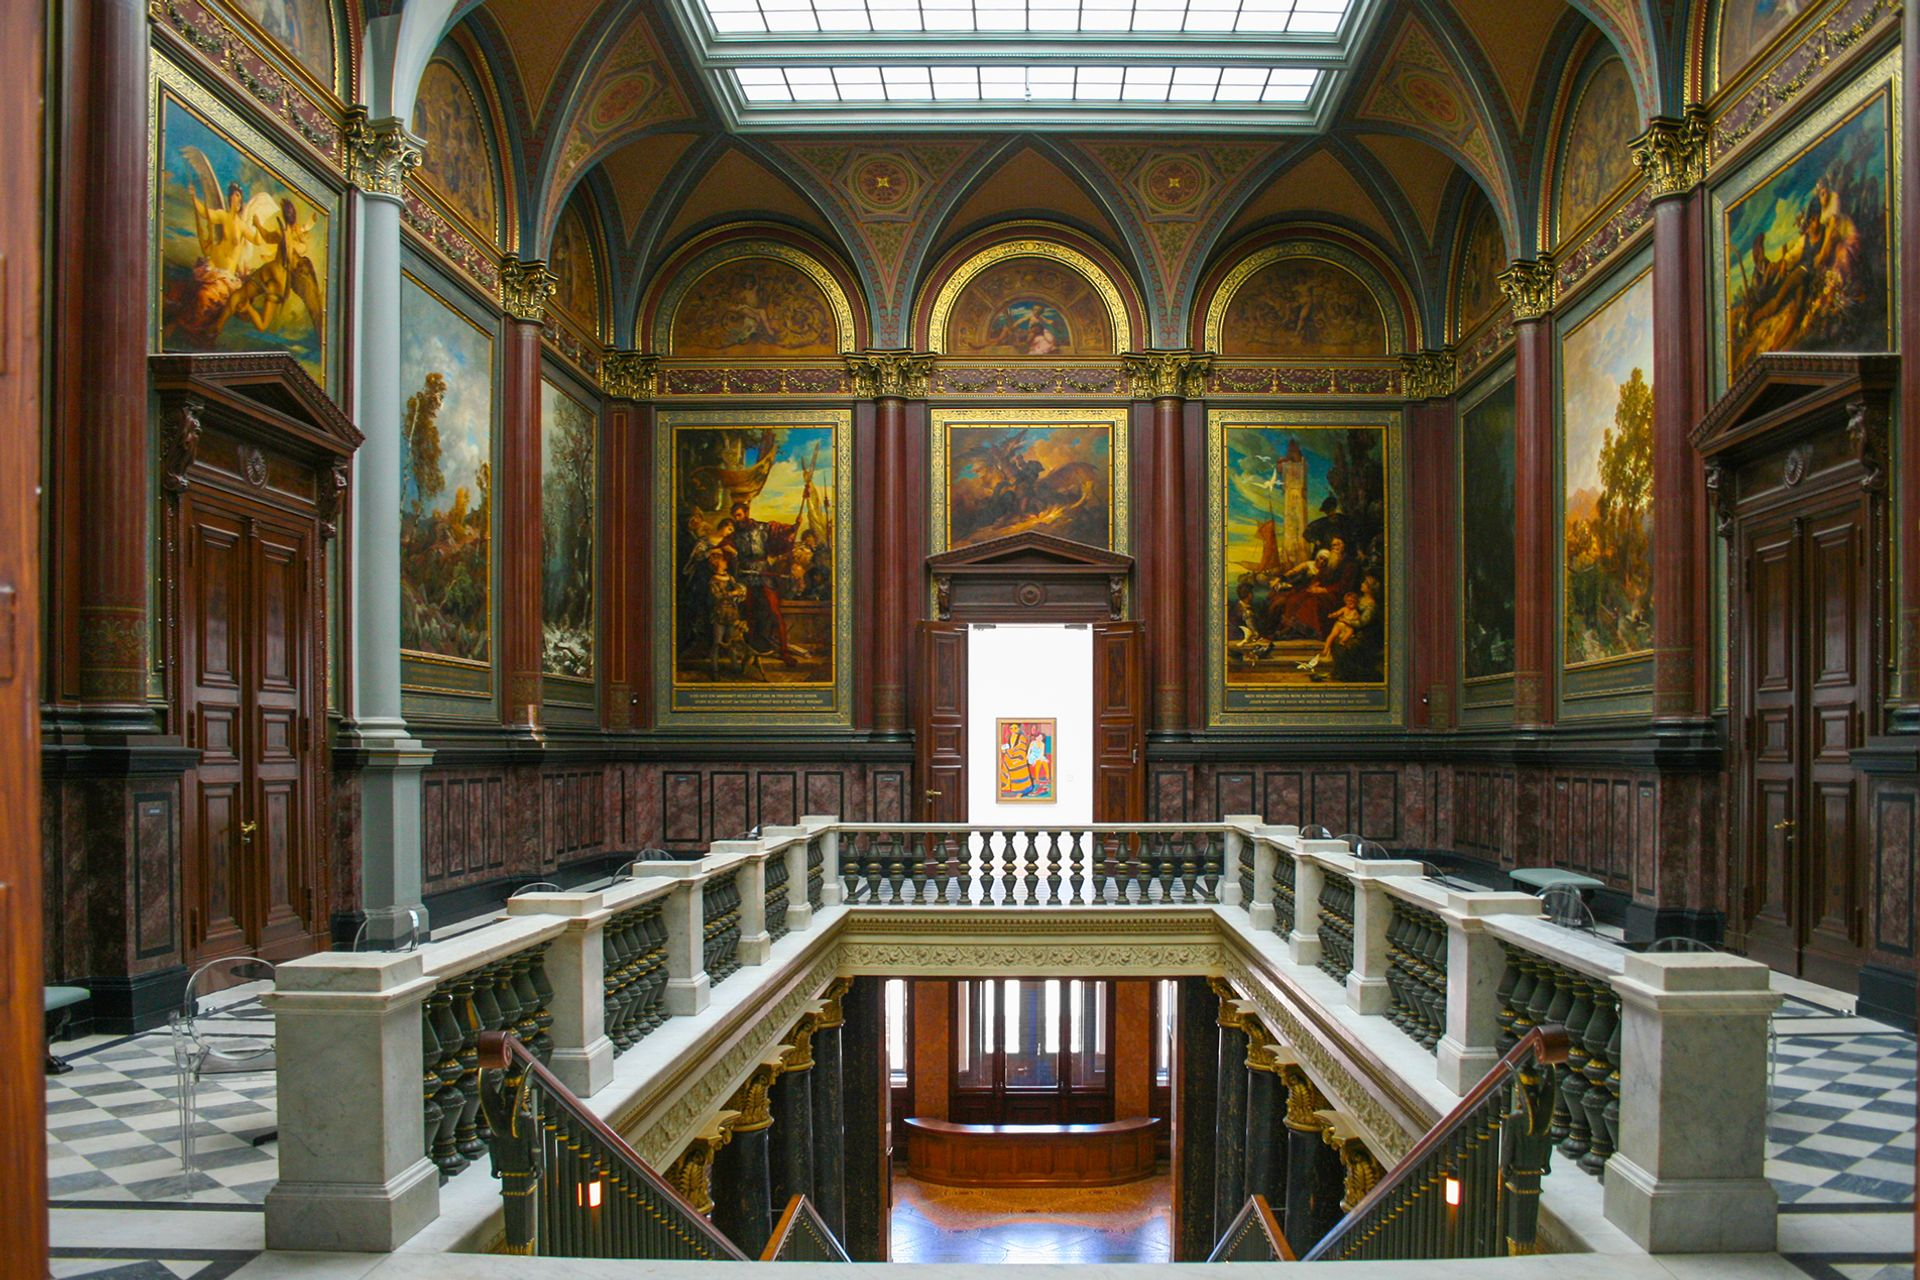 The Hamburg Kunsthalle has been forced to shut for a month, just one week after it reopened